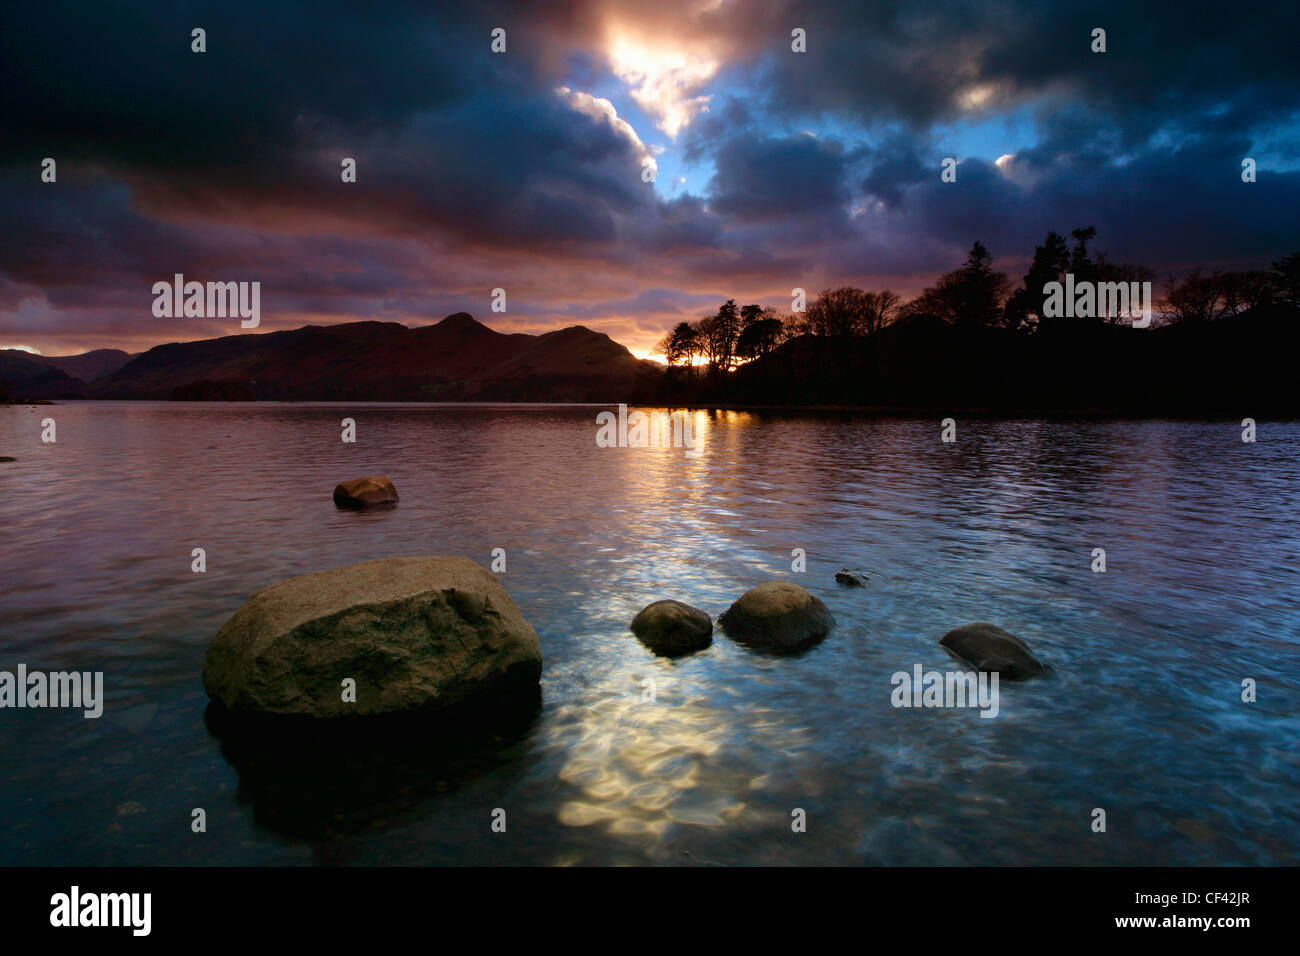 Coucher de soleil sur Derwent Water dans le Lake District. Photo Stock